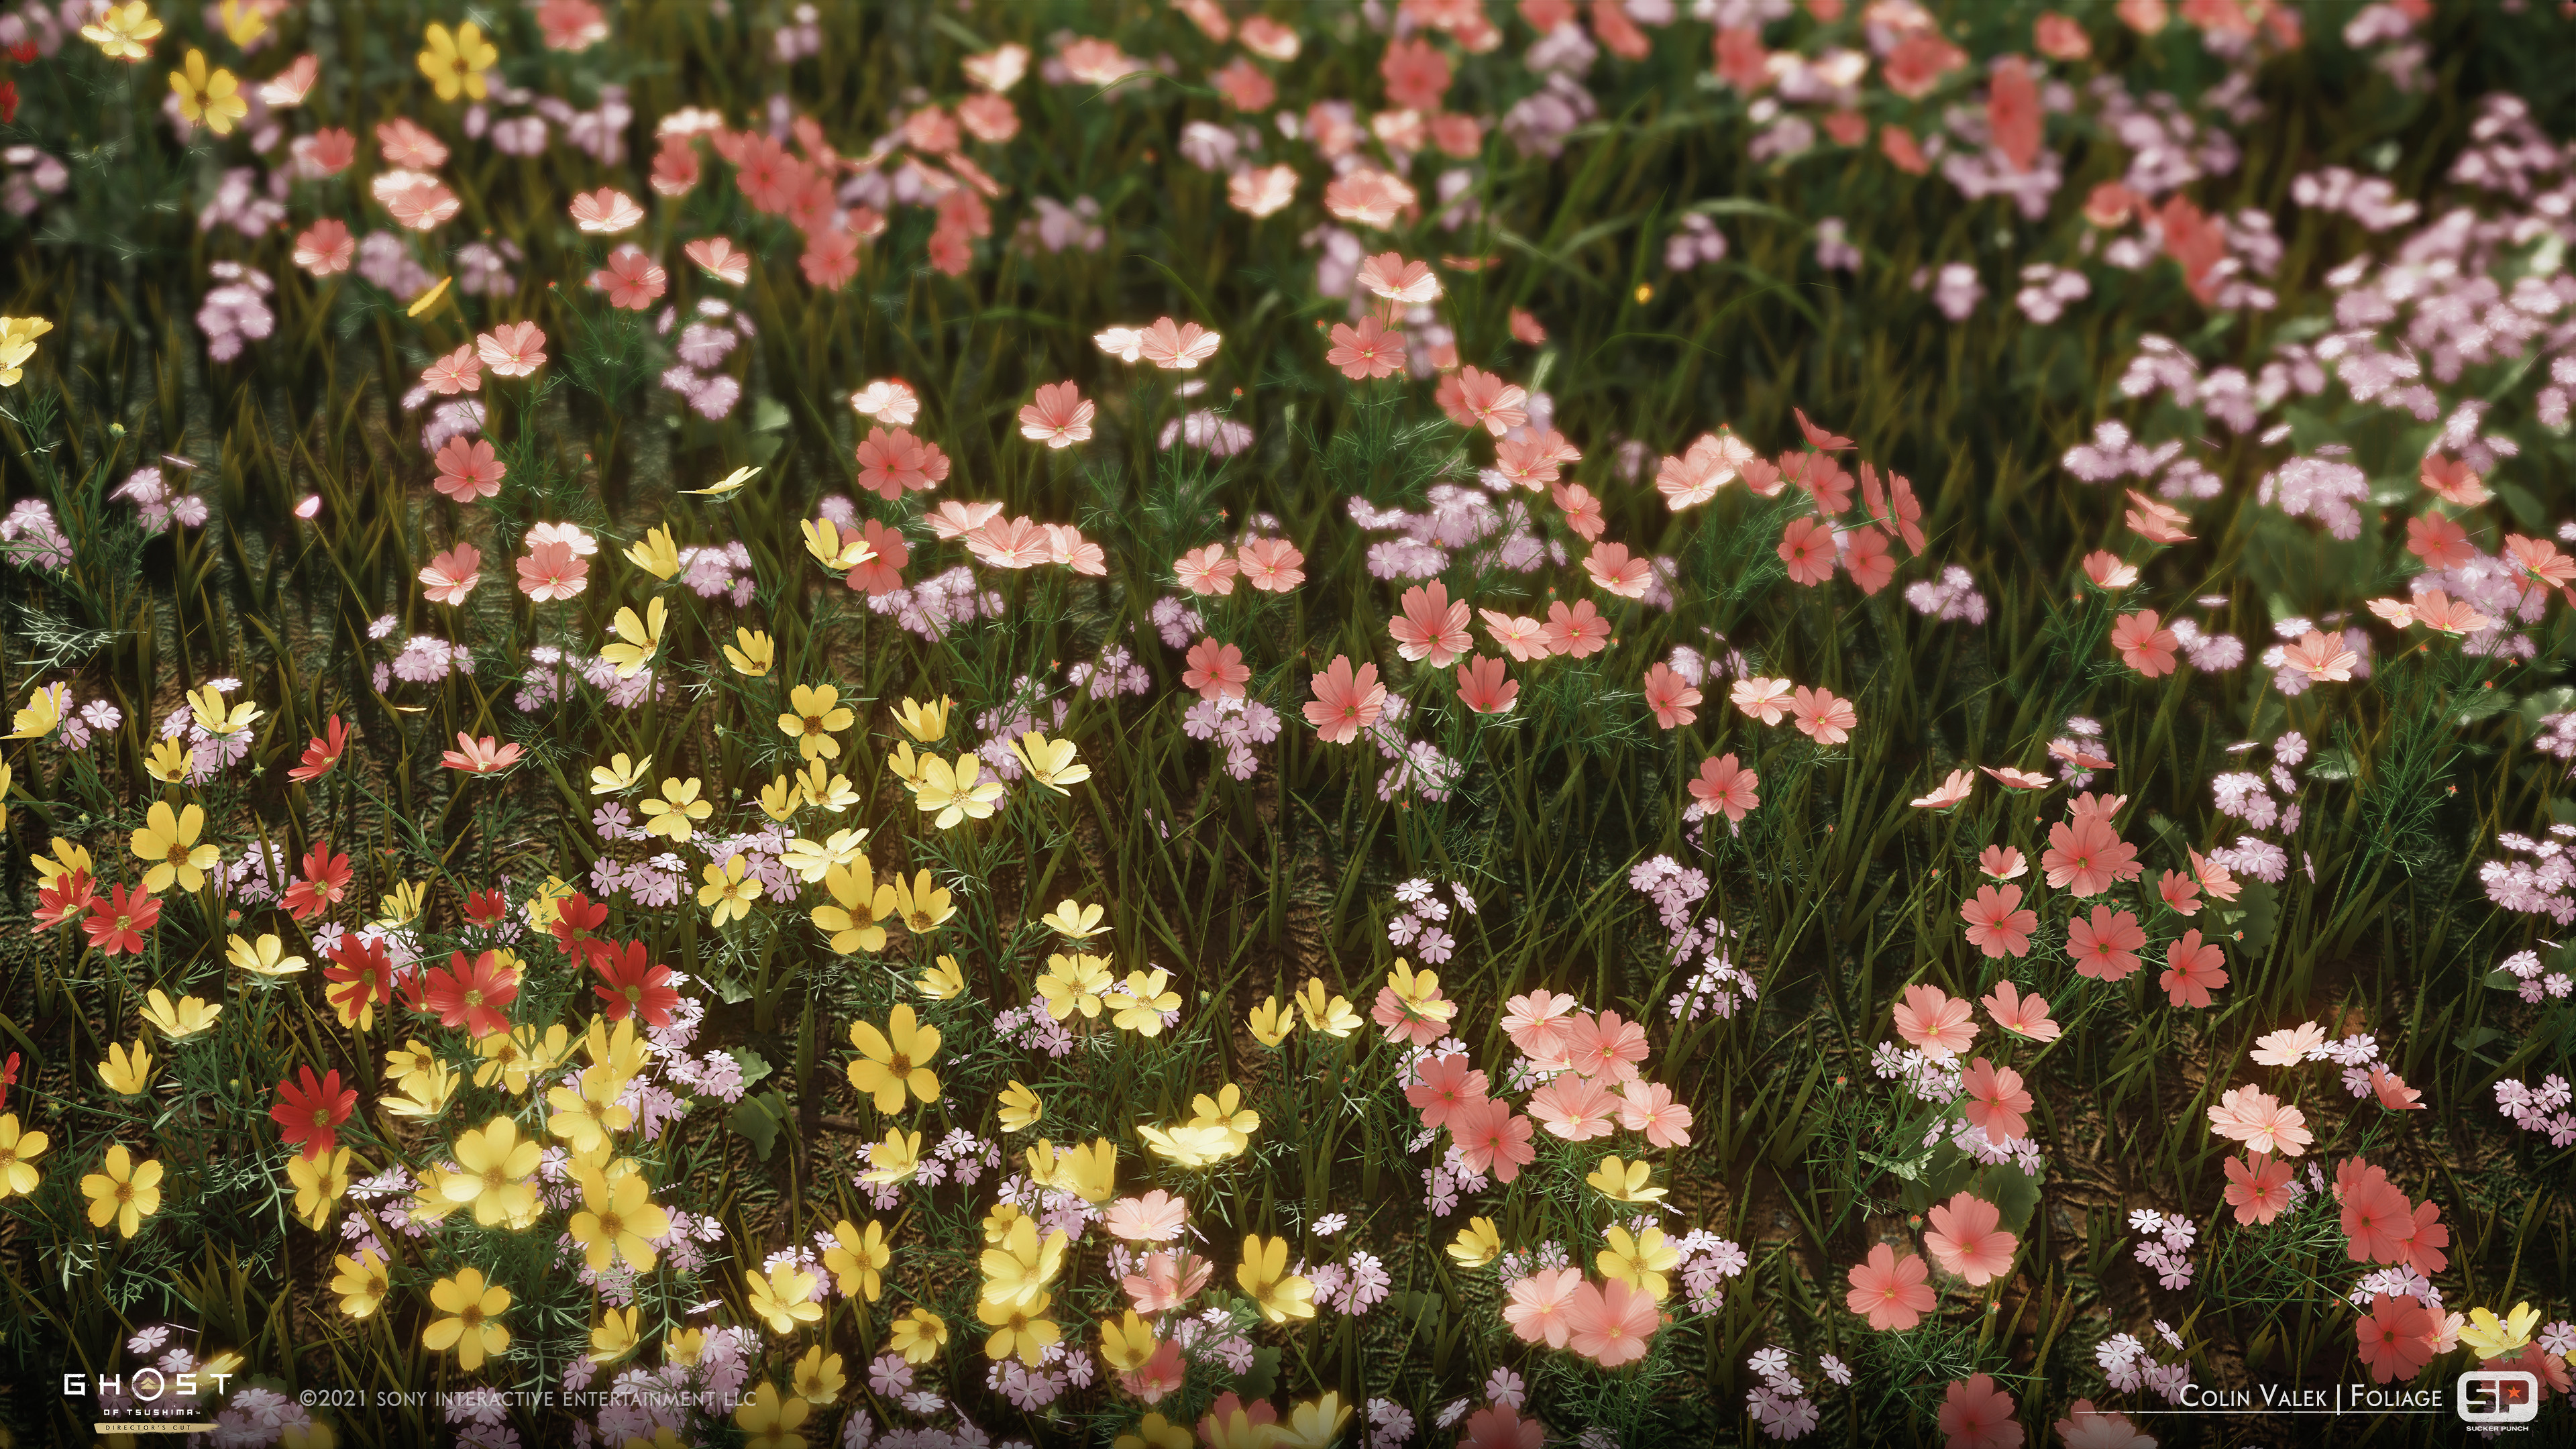 Various cosmos flowers, with some Japanese primrose sprinkled in.